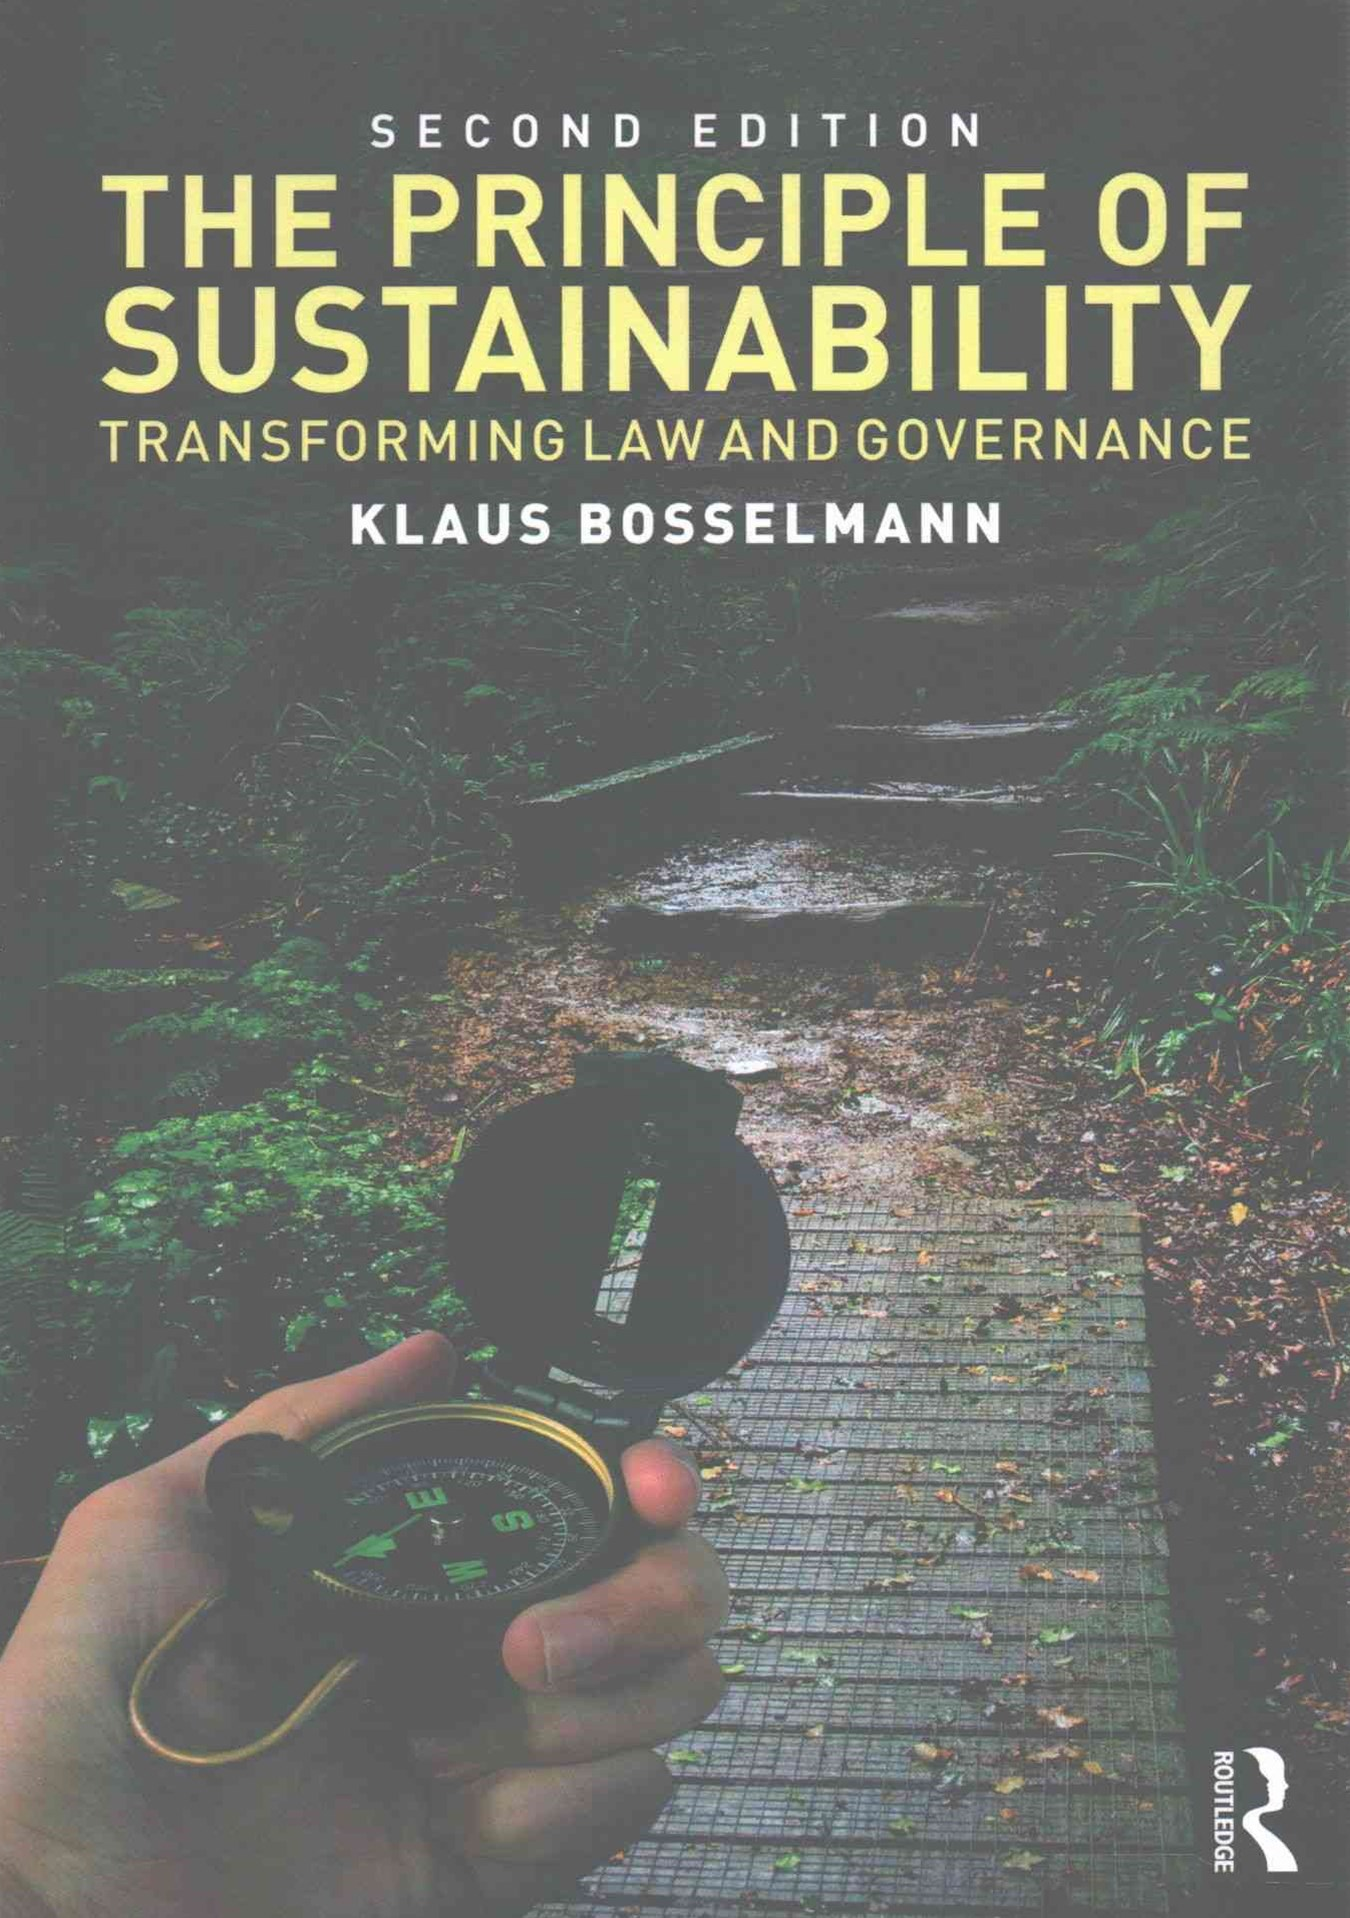 Principle of Sustainability